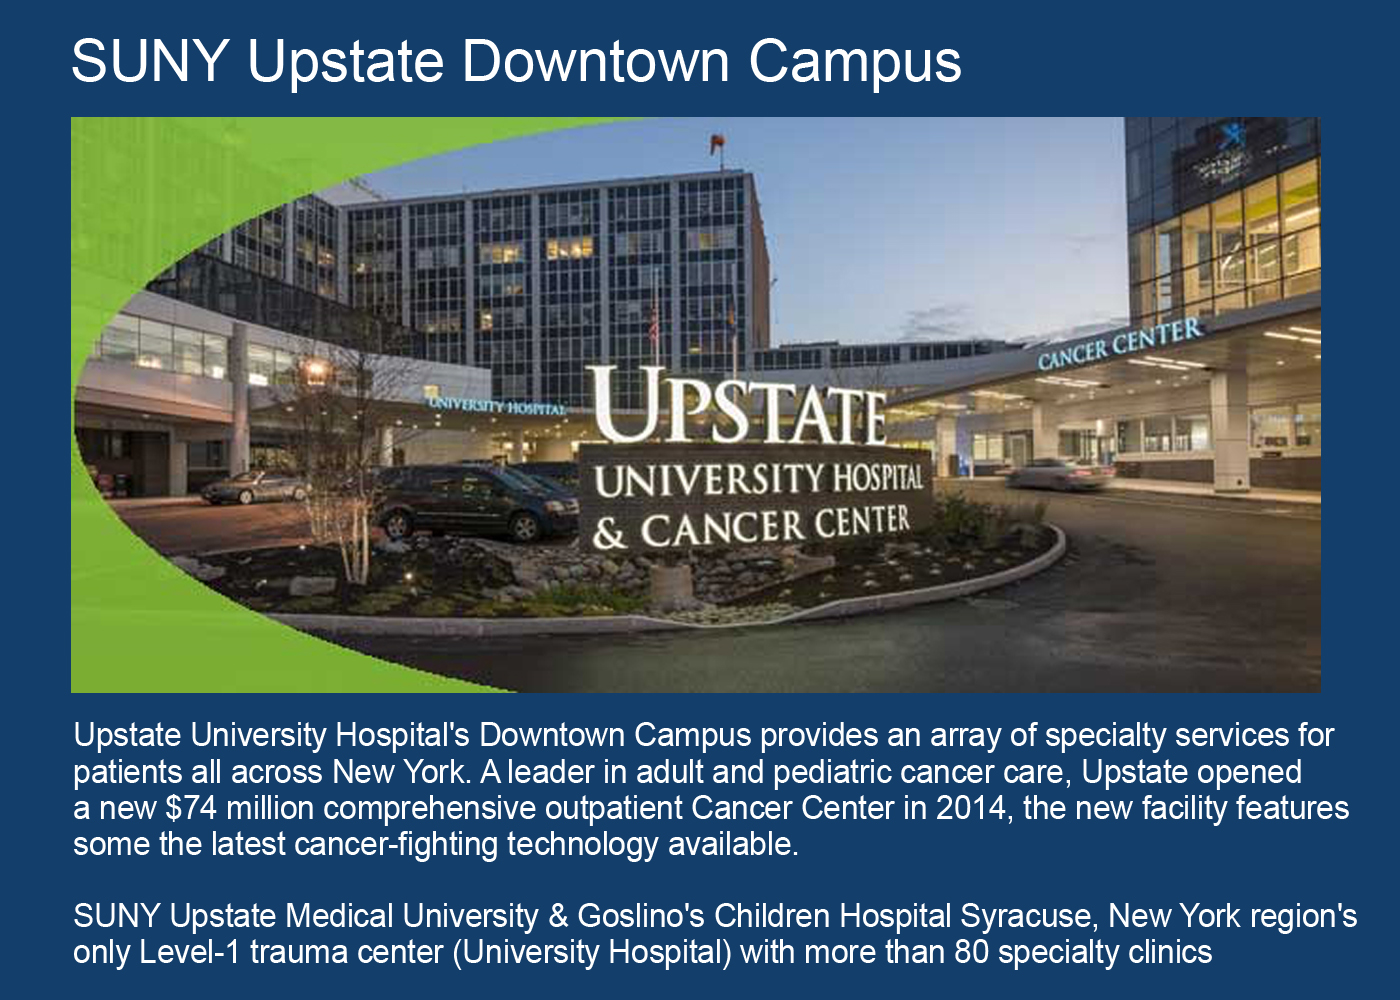 SUNY Upstate Downtown